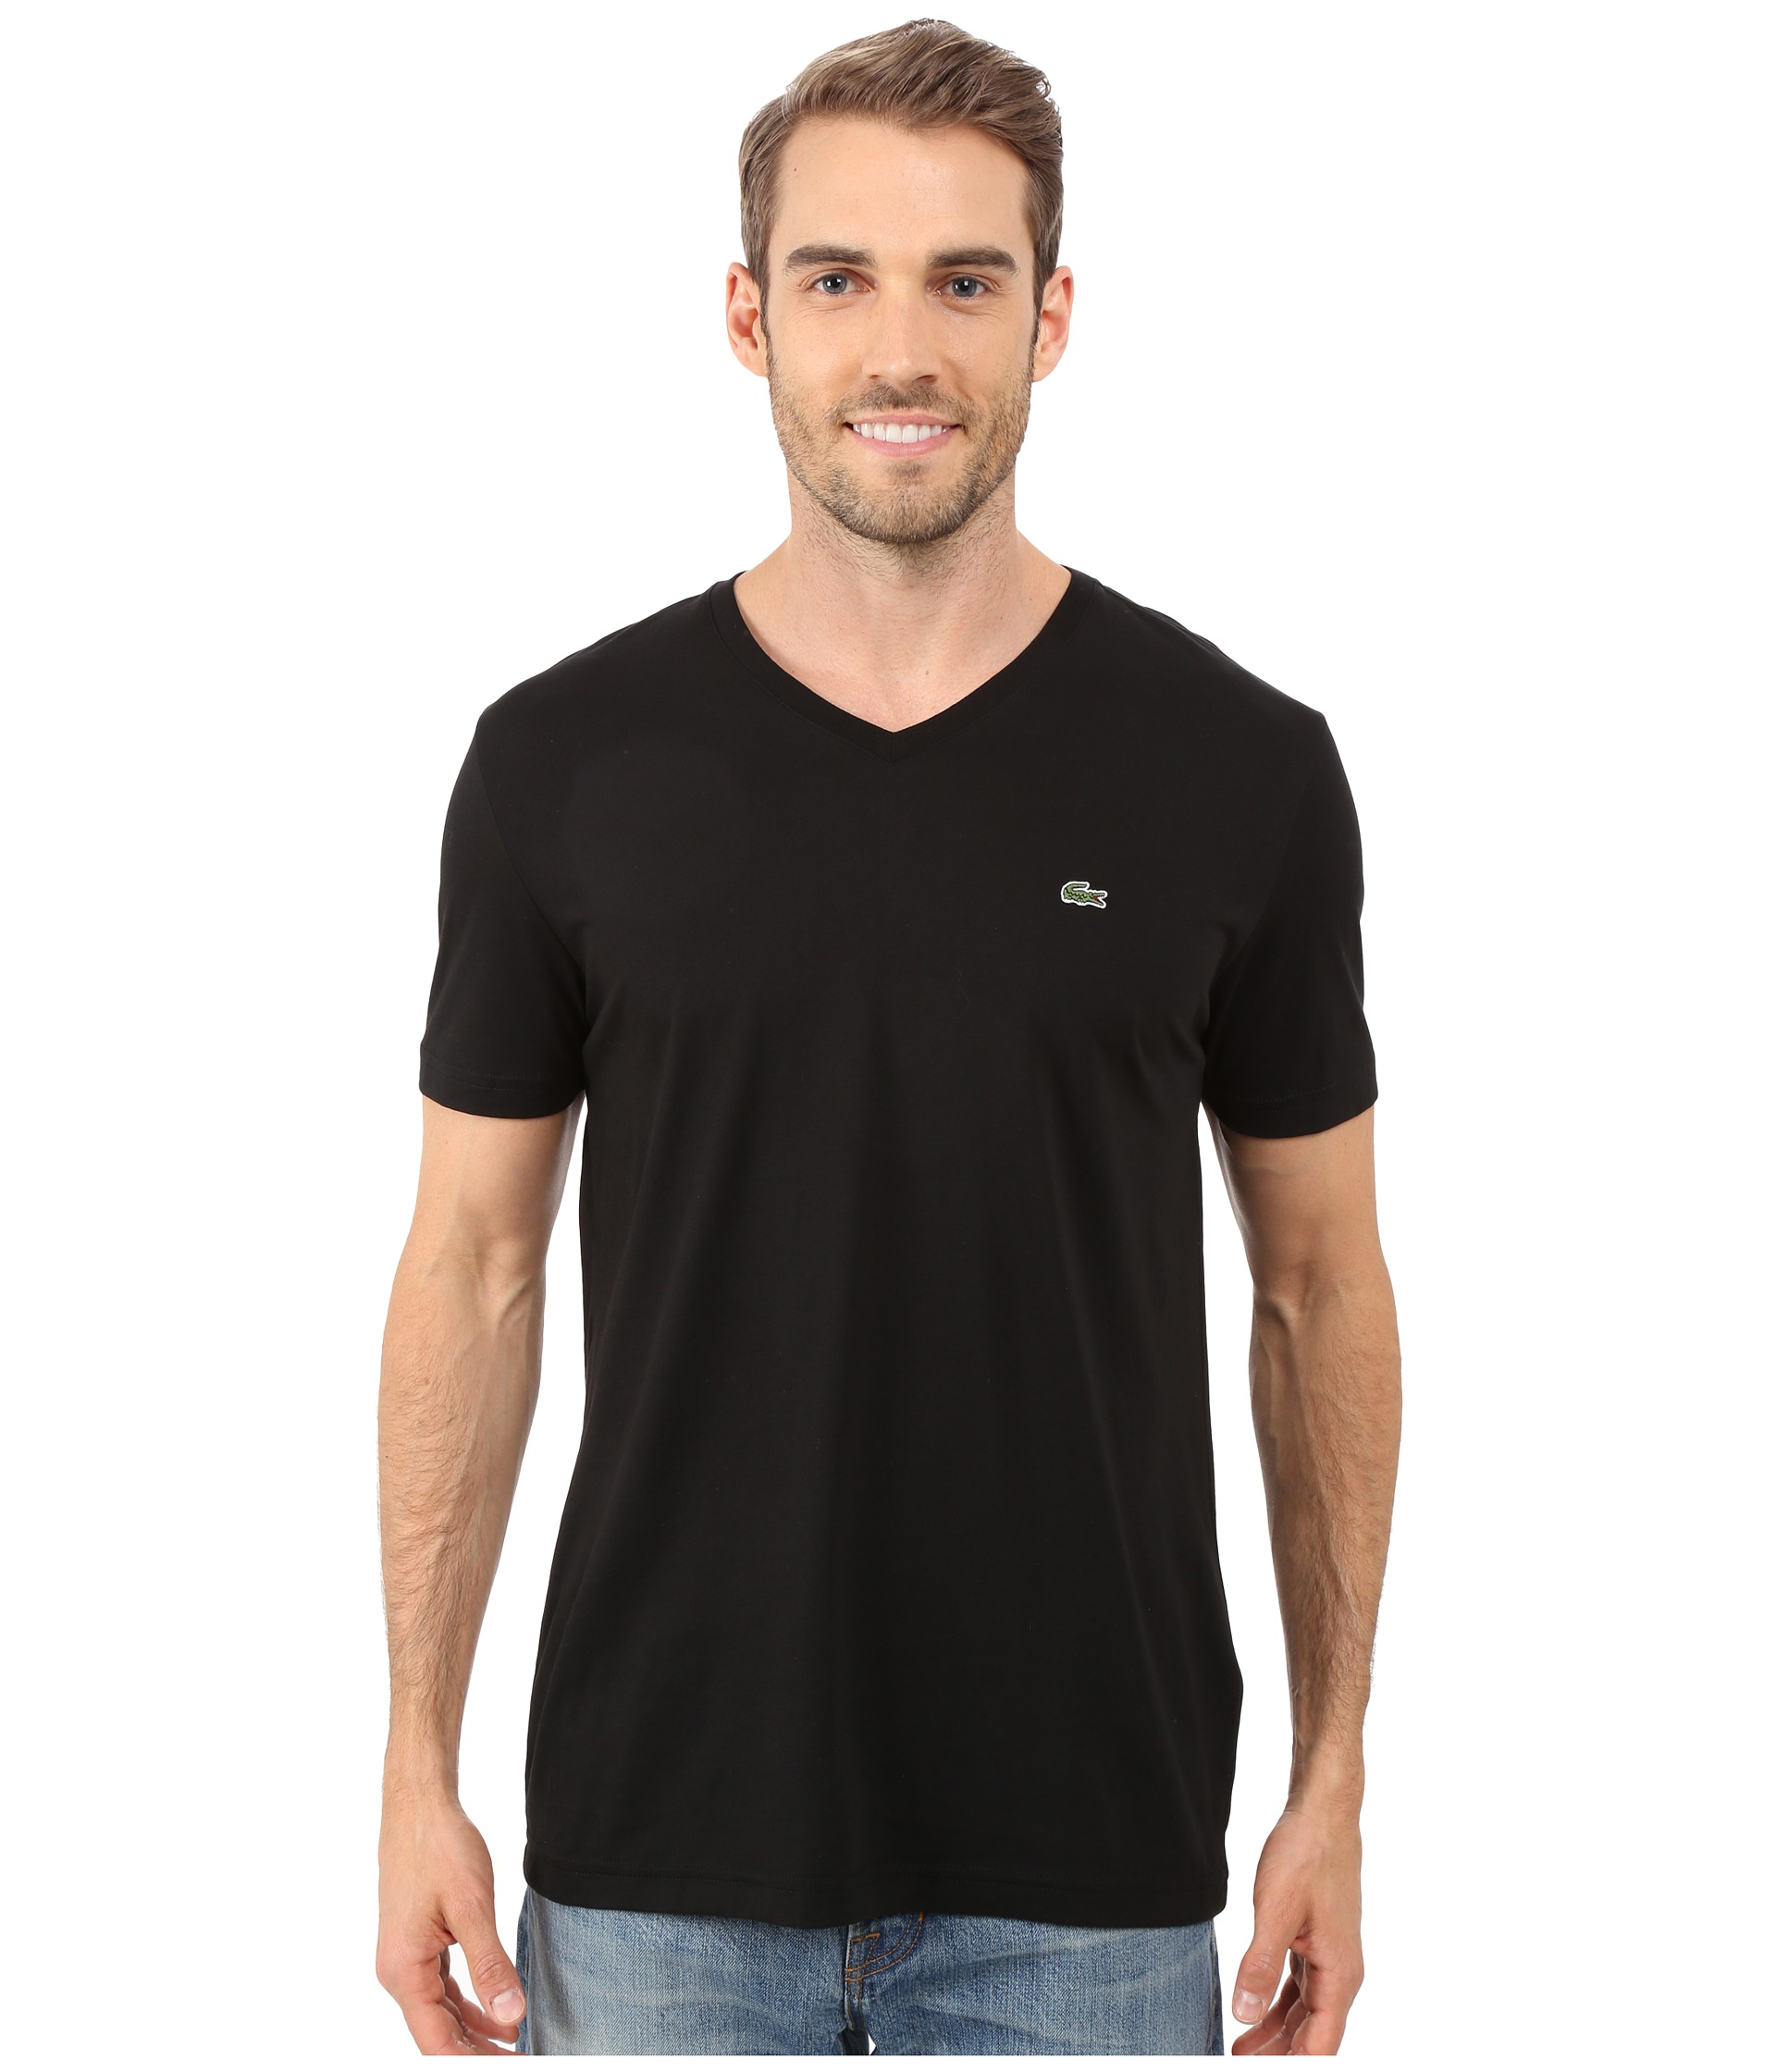 lacoste s s pima jersey v neck t shirt free. Black Bedroom Furniture Sets. Home Design Ideas